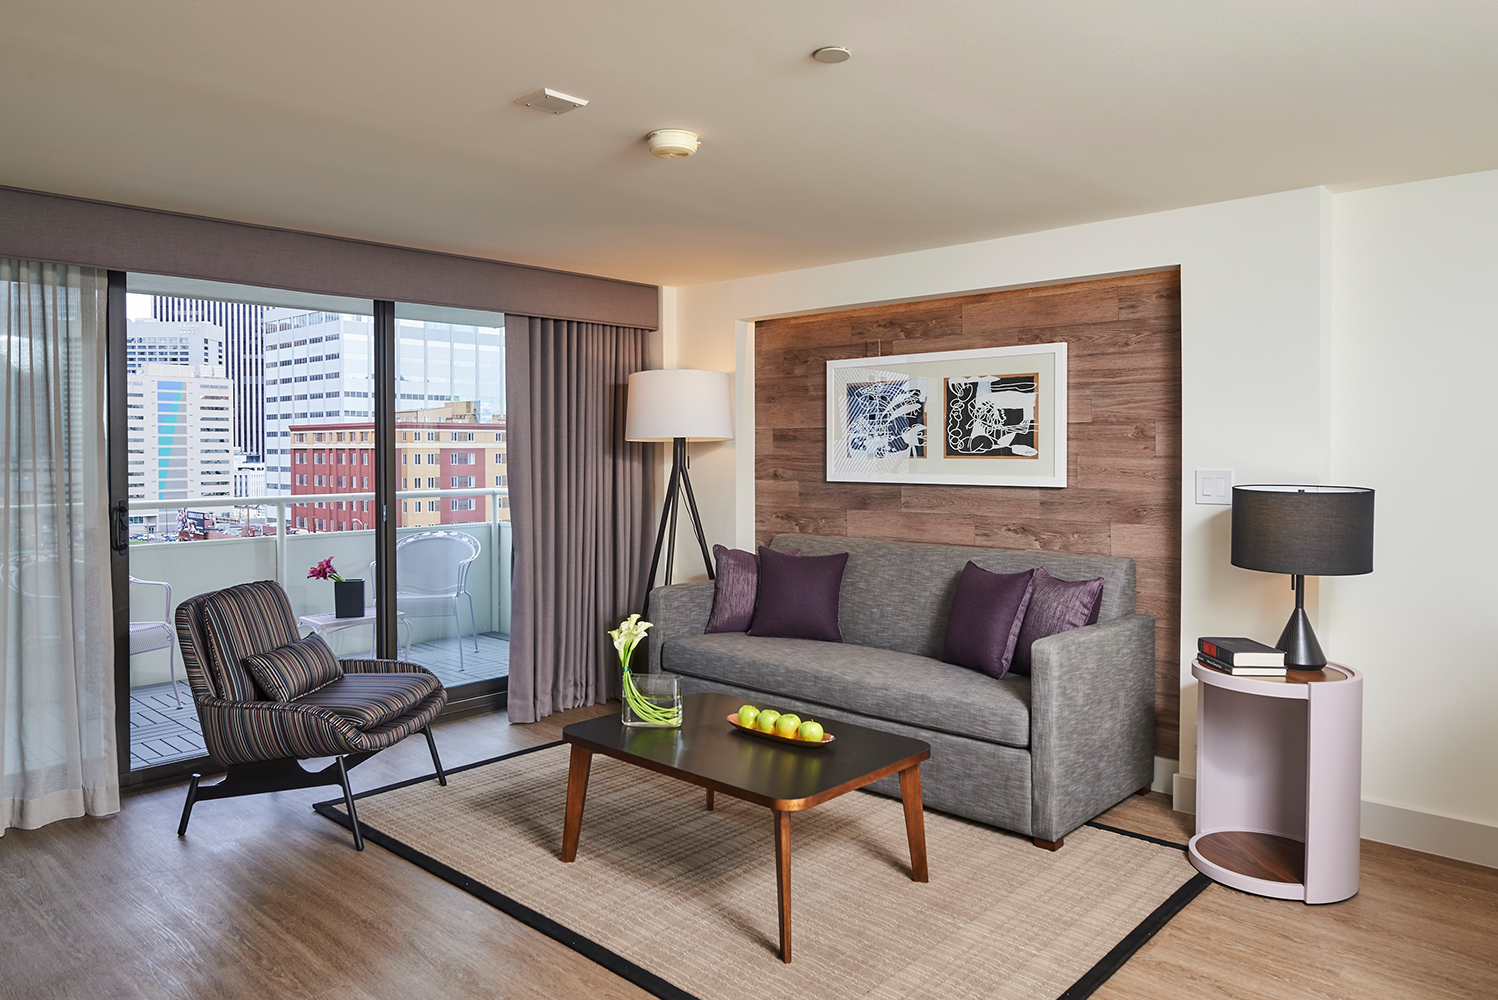 The Warwick Denver, which is located in the Mile High City, completed the renovation of all its 216 guestrooms and suites.